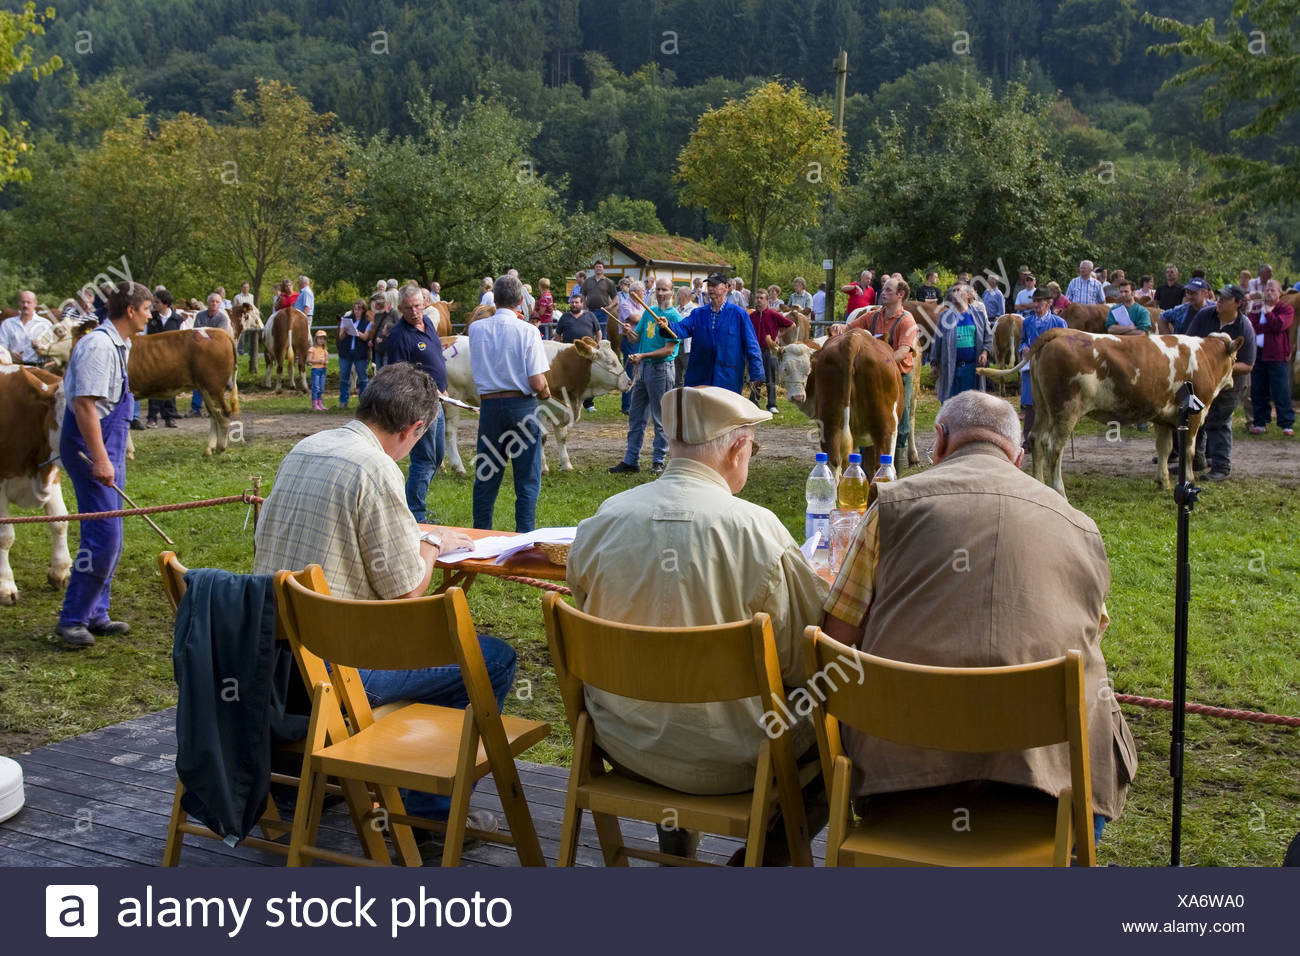 domestic cattle (Bos primigenius f. taurus), cattle vendue at the Kuckucksmarkt, Eberbach, Germany, Baden-Wuerttemberg, Eberbach - Stock Image